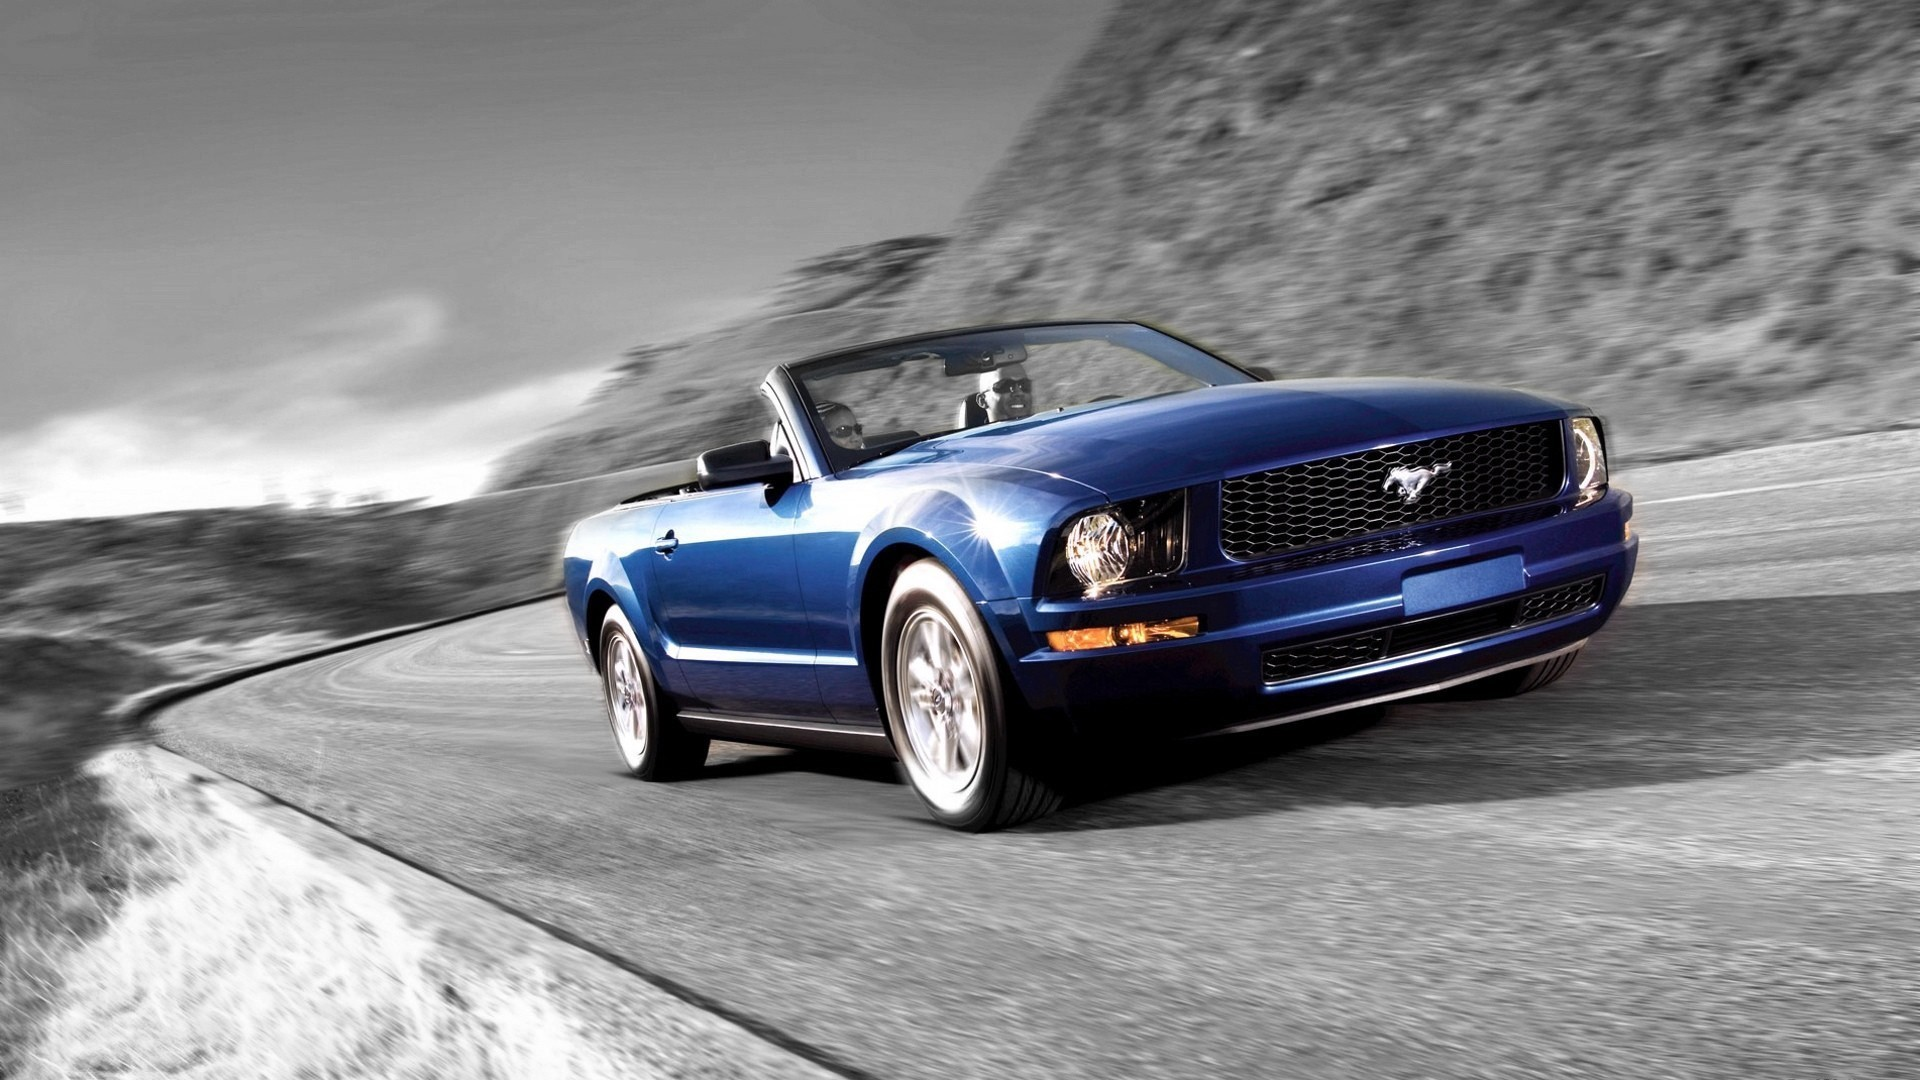 Ford Mustang Black And White Blue Cars Wallpaper Allwallpaper In